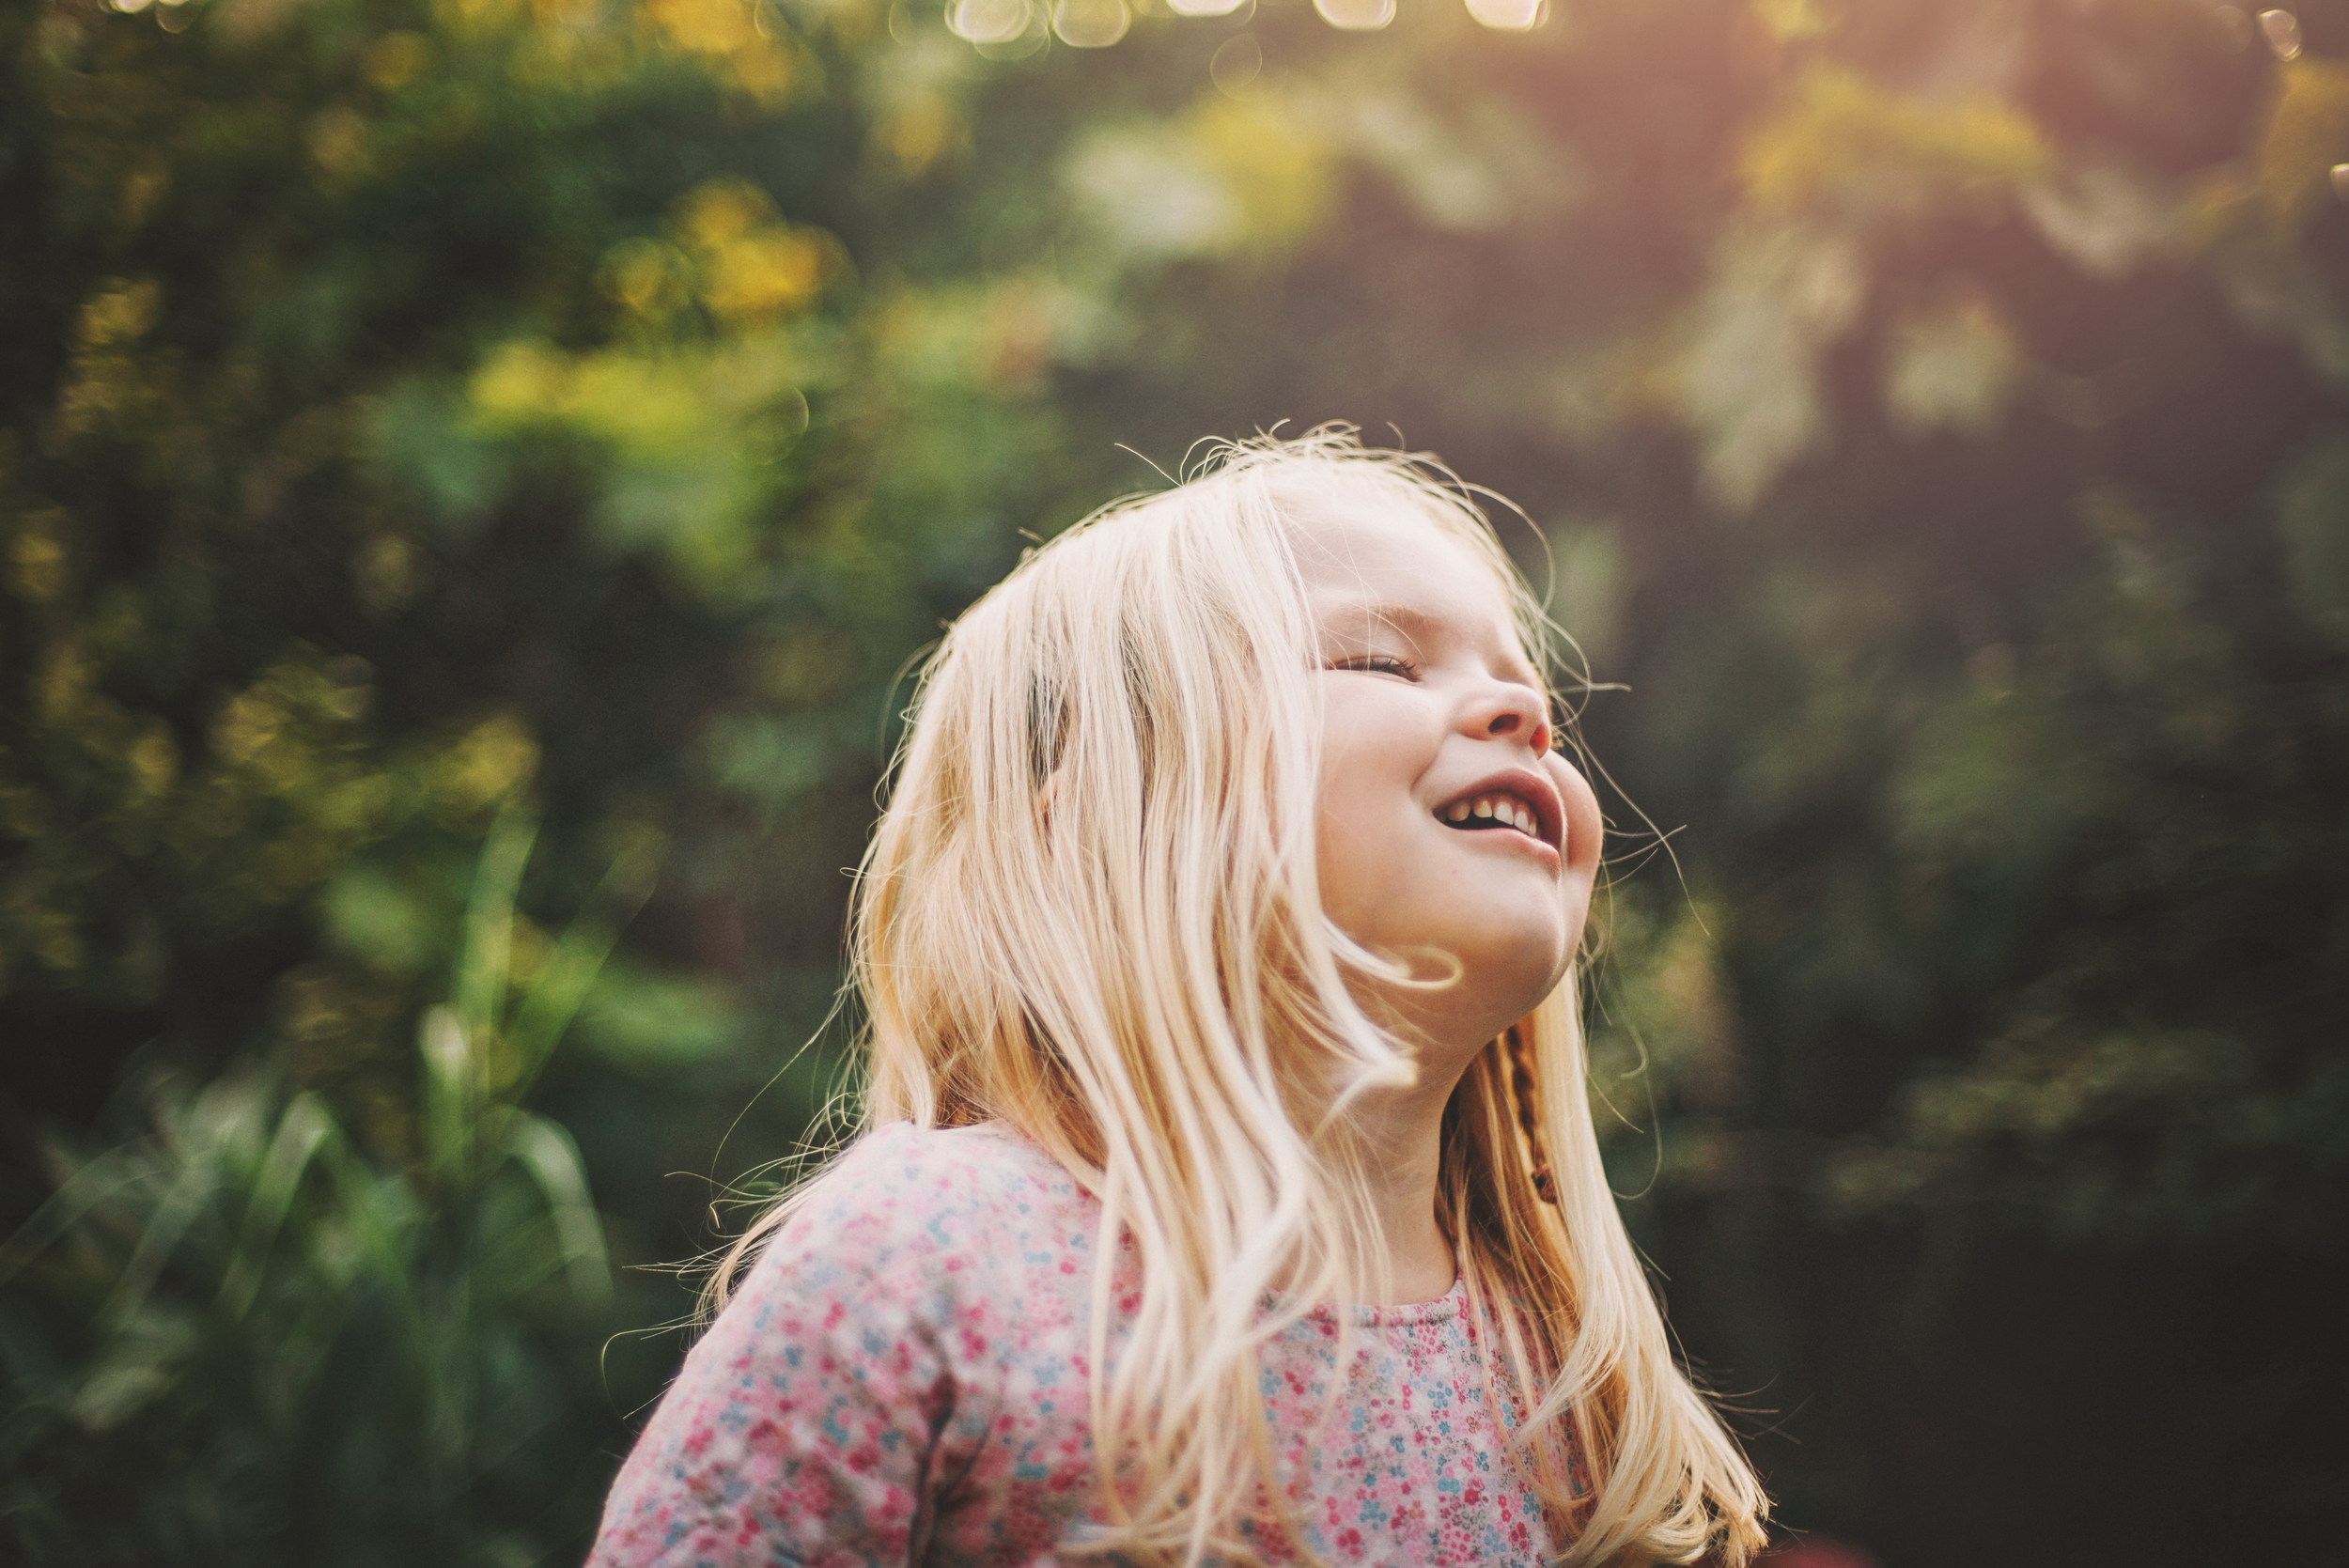 Little girl enjoys sun in the garden Essex Documentary and Lifestyle Portrait Photographer